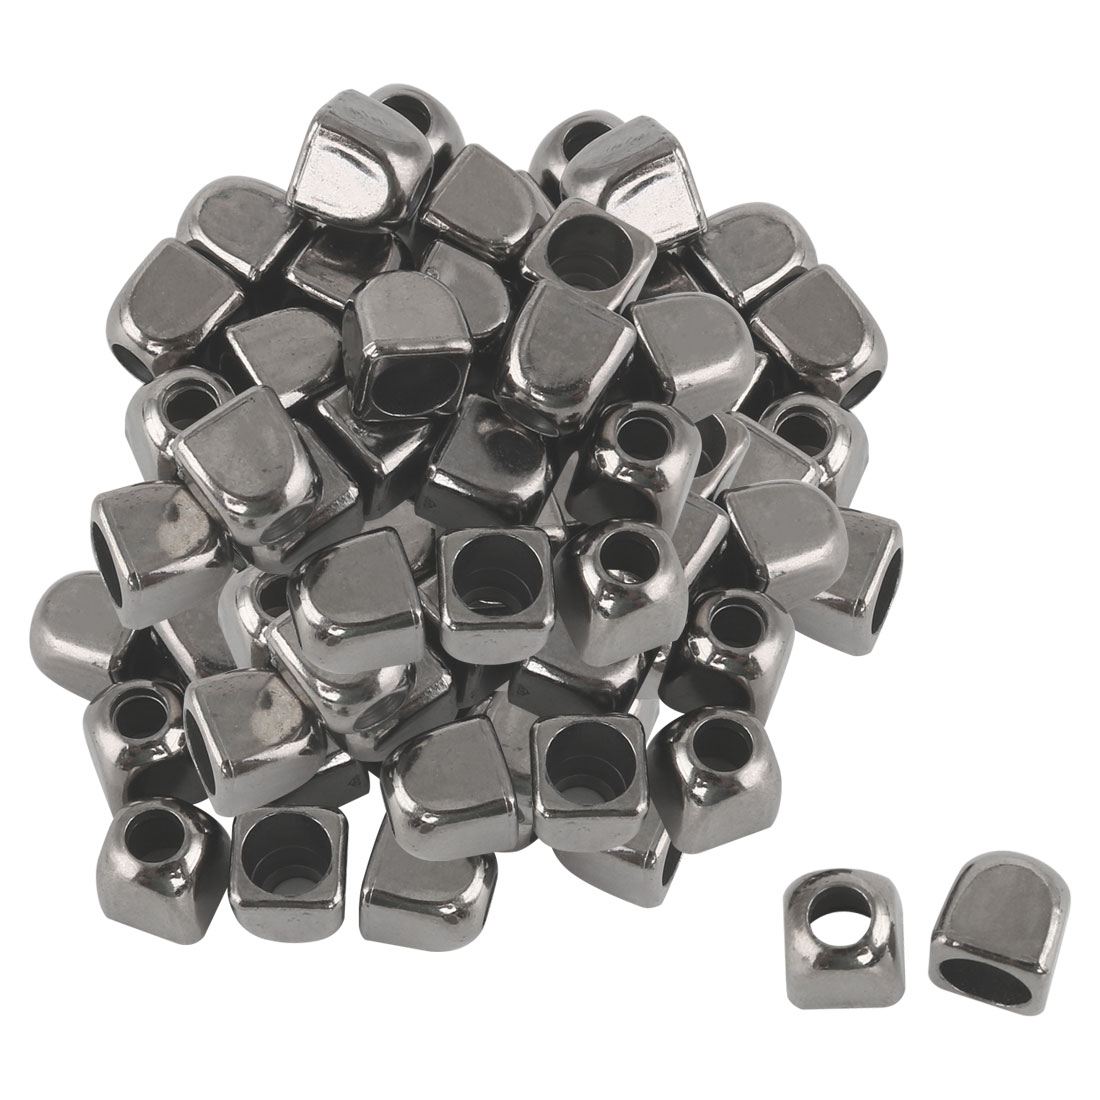 40pcs Plastic Bell End Stopper Square Lace Lock Rope Fastener Silver Black